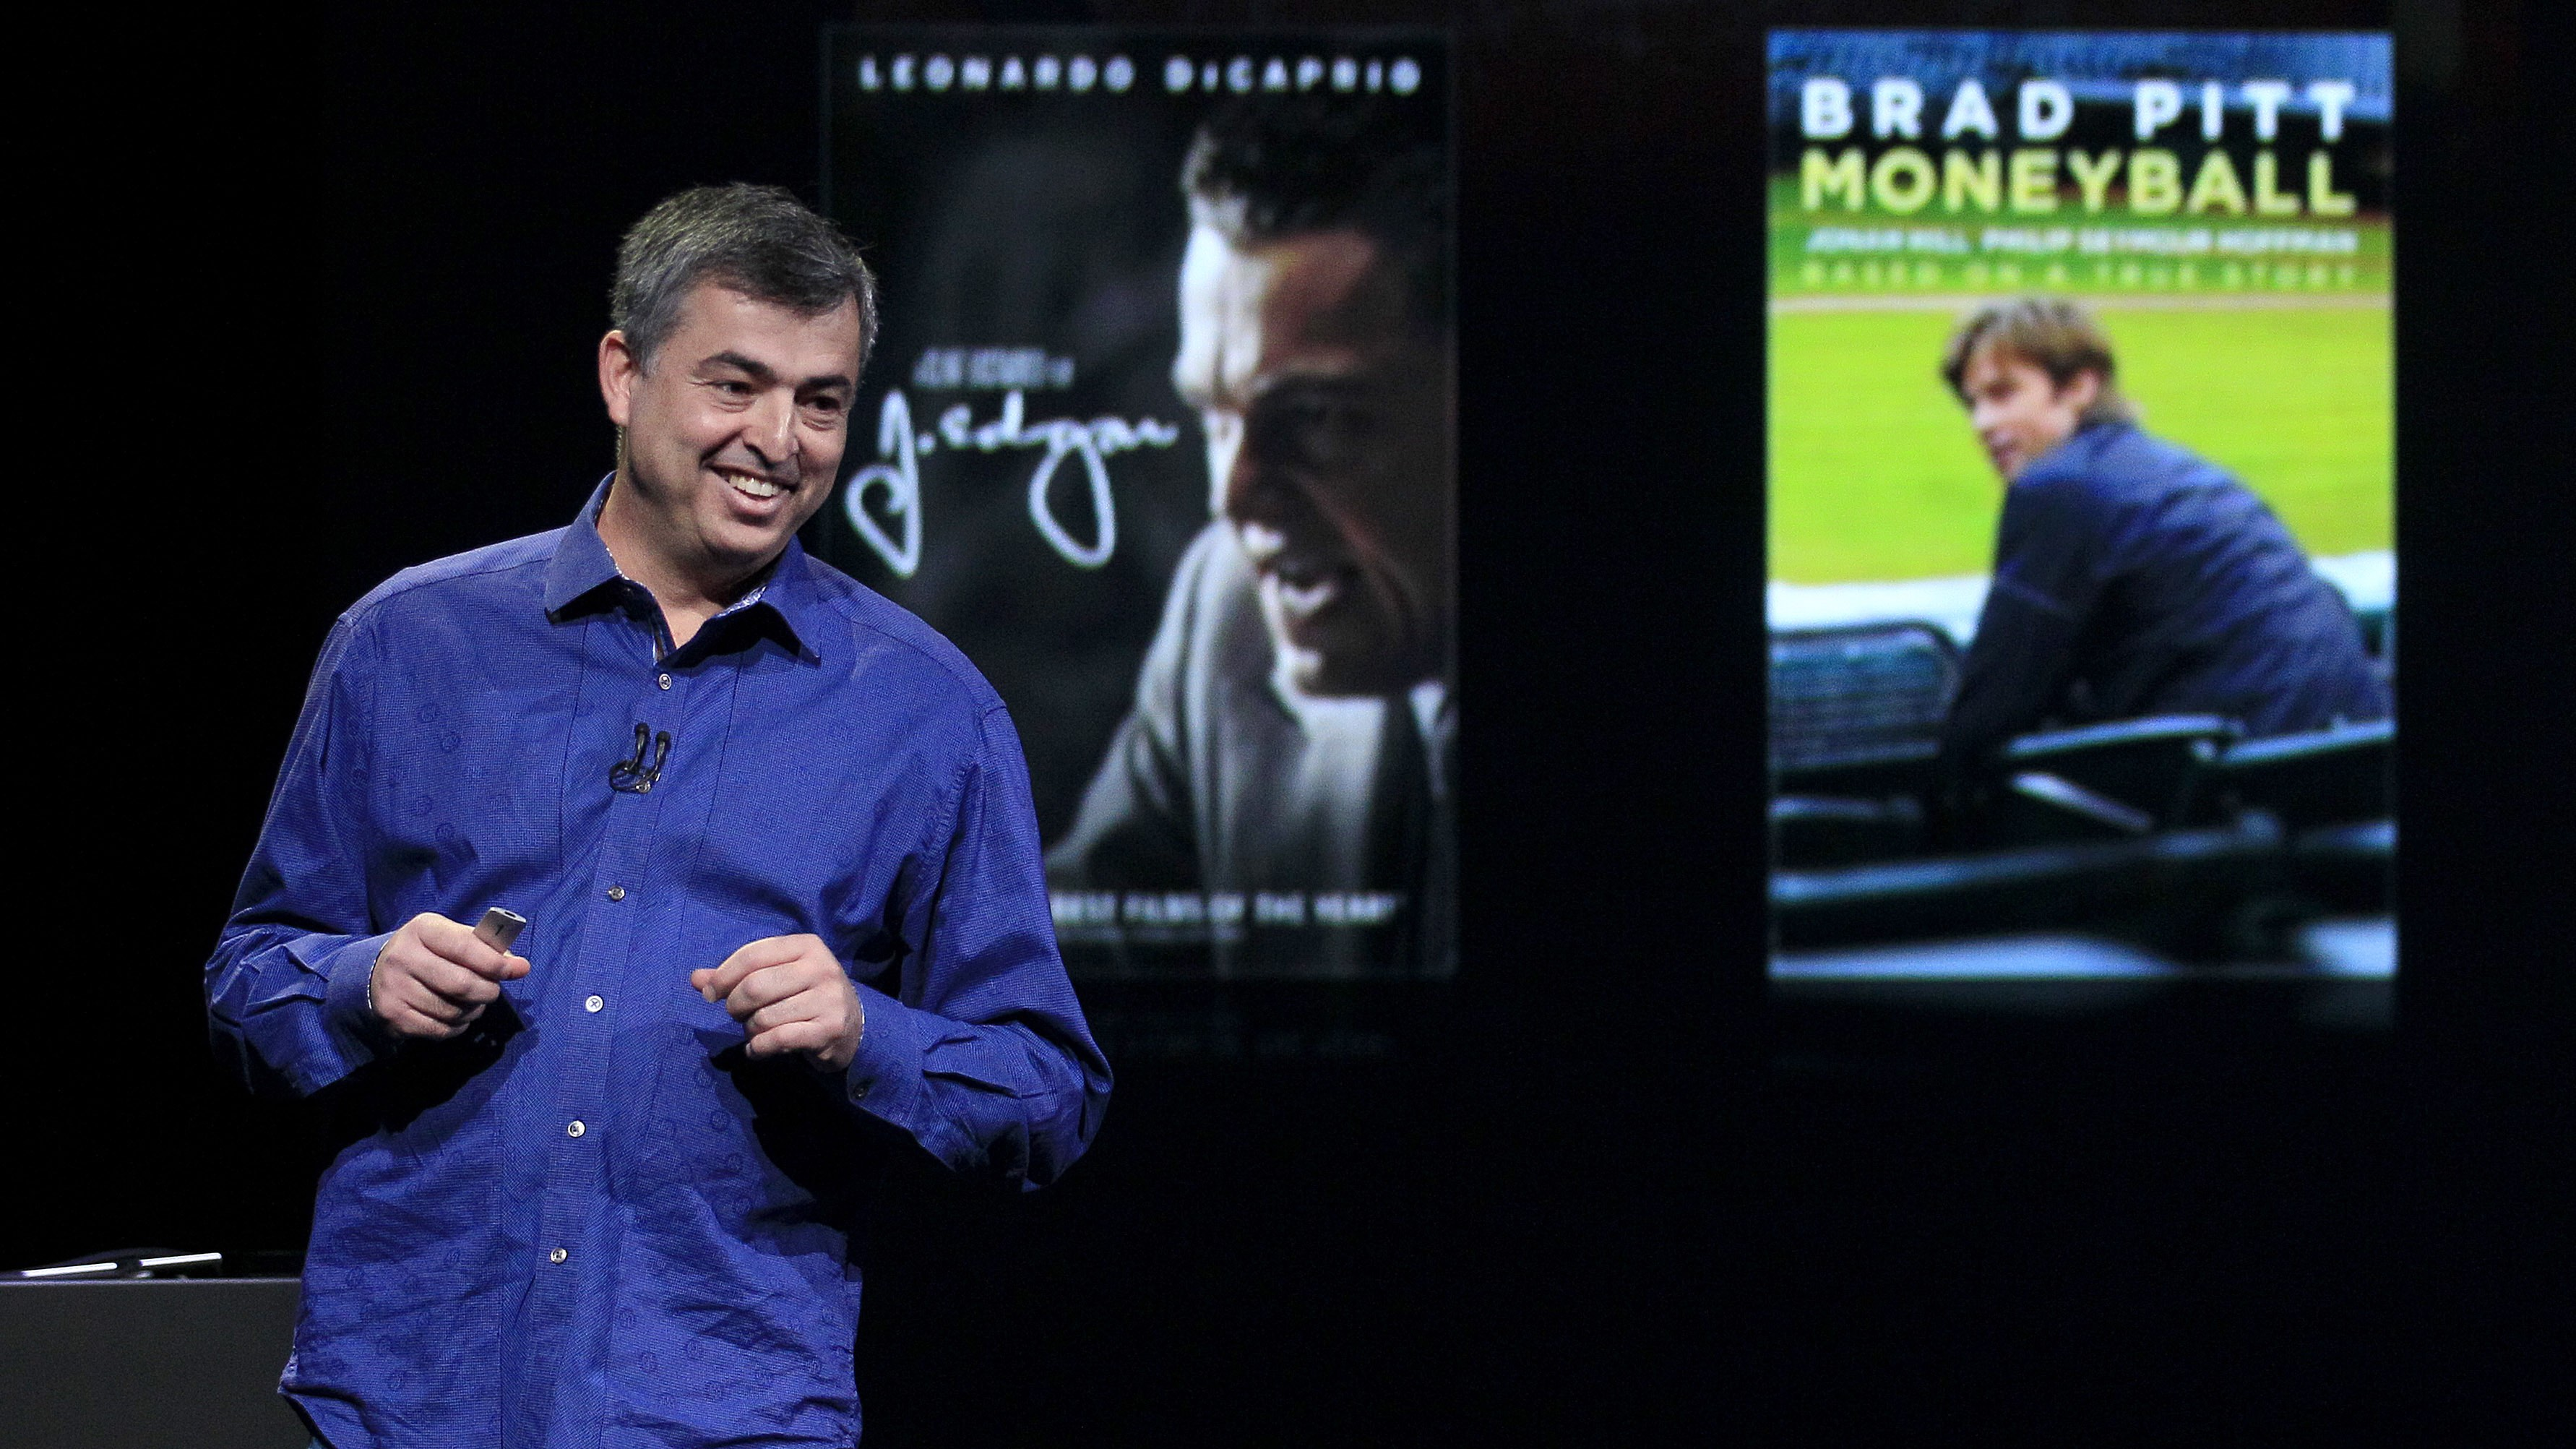 Eddy Cue, Apple's senior vice president of Internet Software and Services, speaks at an Apple event in San Francisco, Wednesday, March 7, 2012. (AP Photo/Jeff Chiu)